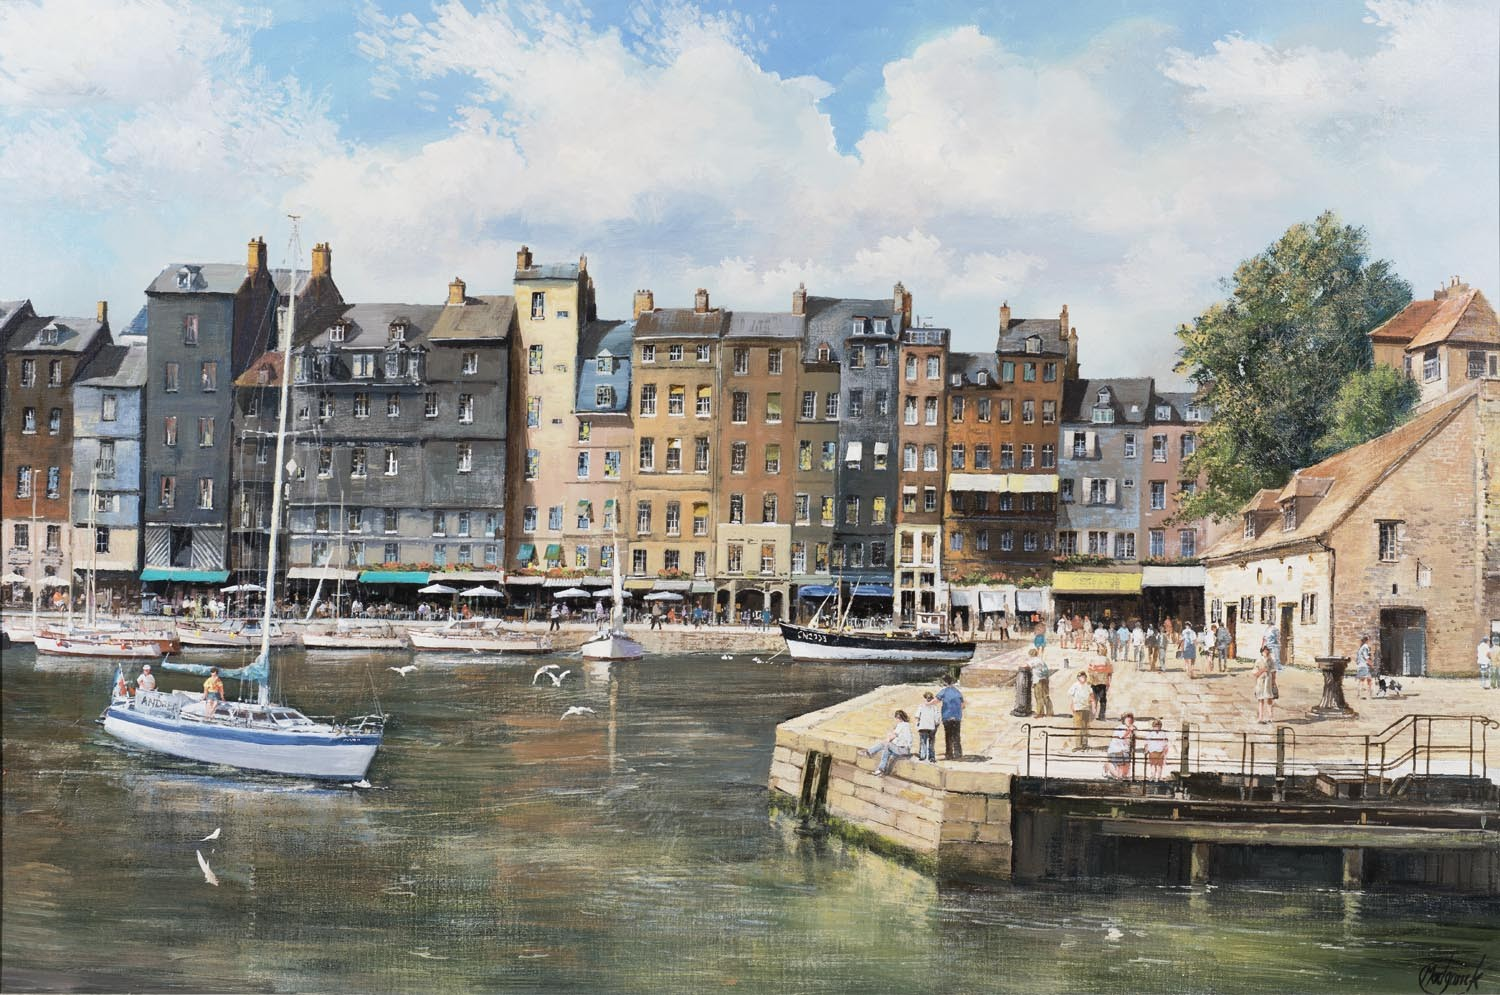 Honfleur Harbour, France - SOLD